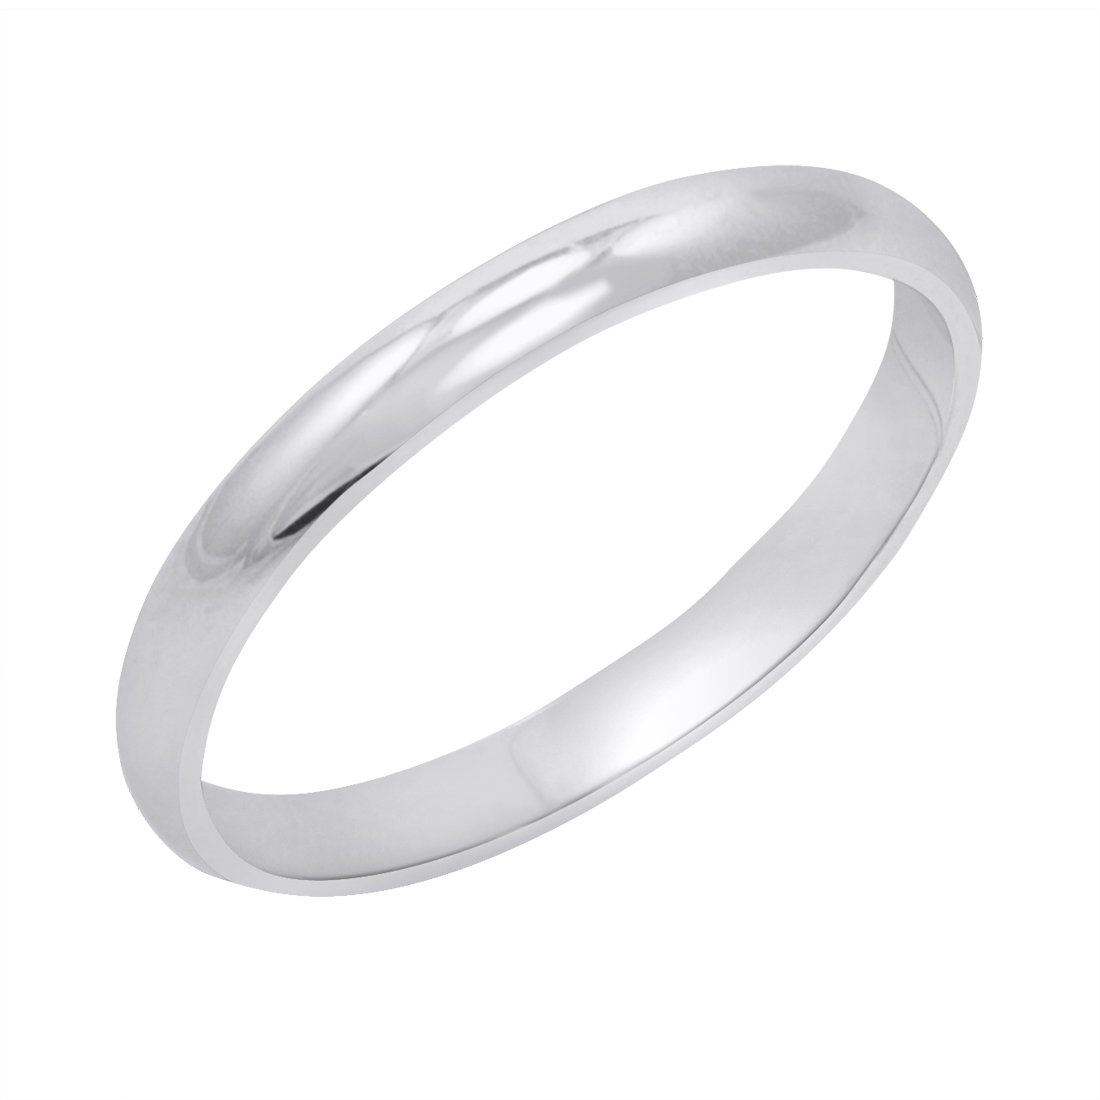 Women's 14K White Gold 2mm Traditional Plain Wedding Band (Available Ring Sizes 4-8 1/2) Size 8 by Amanda Rose Collection